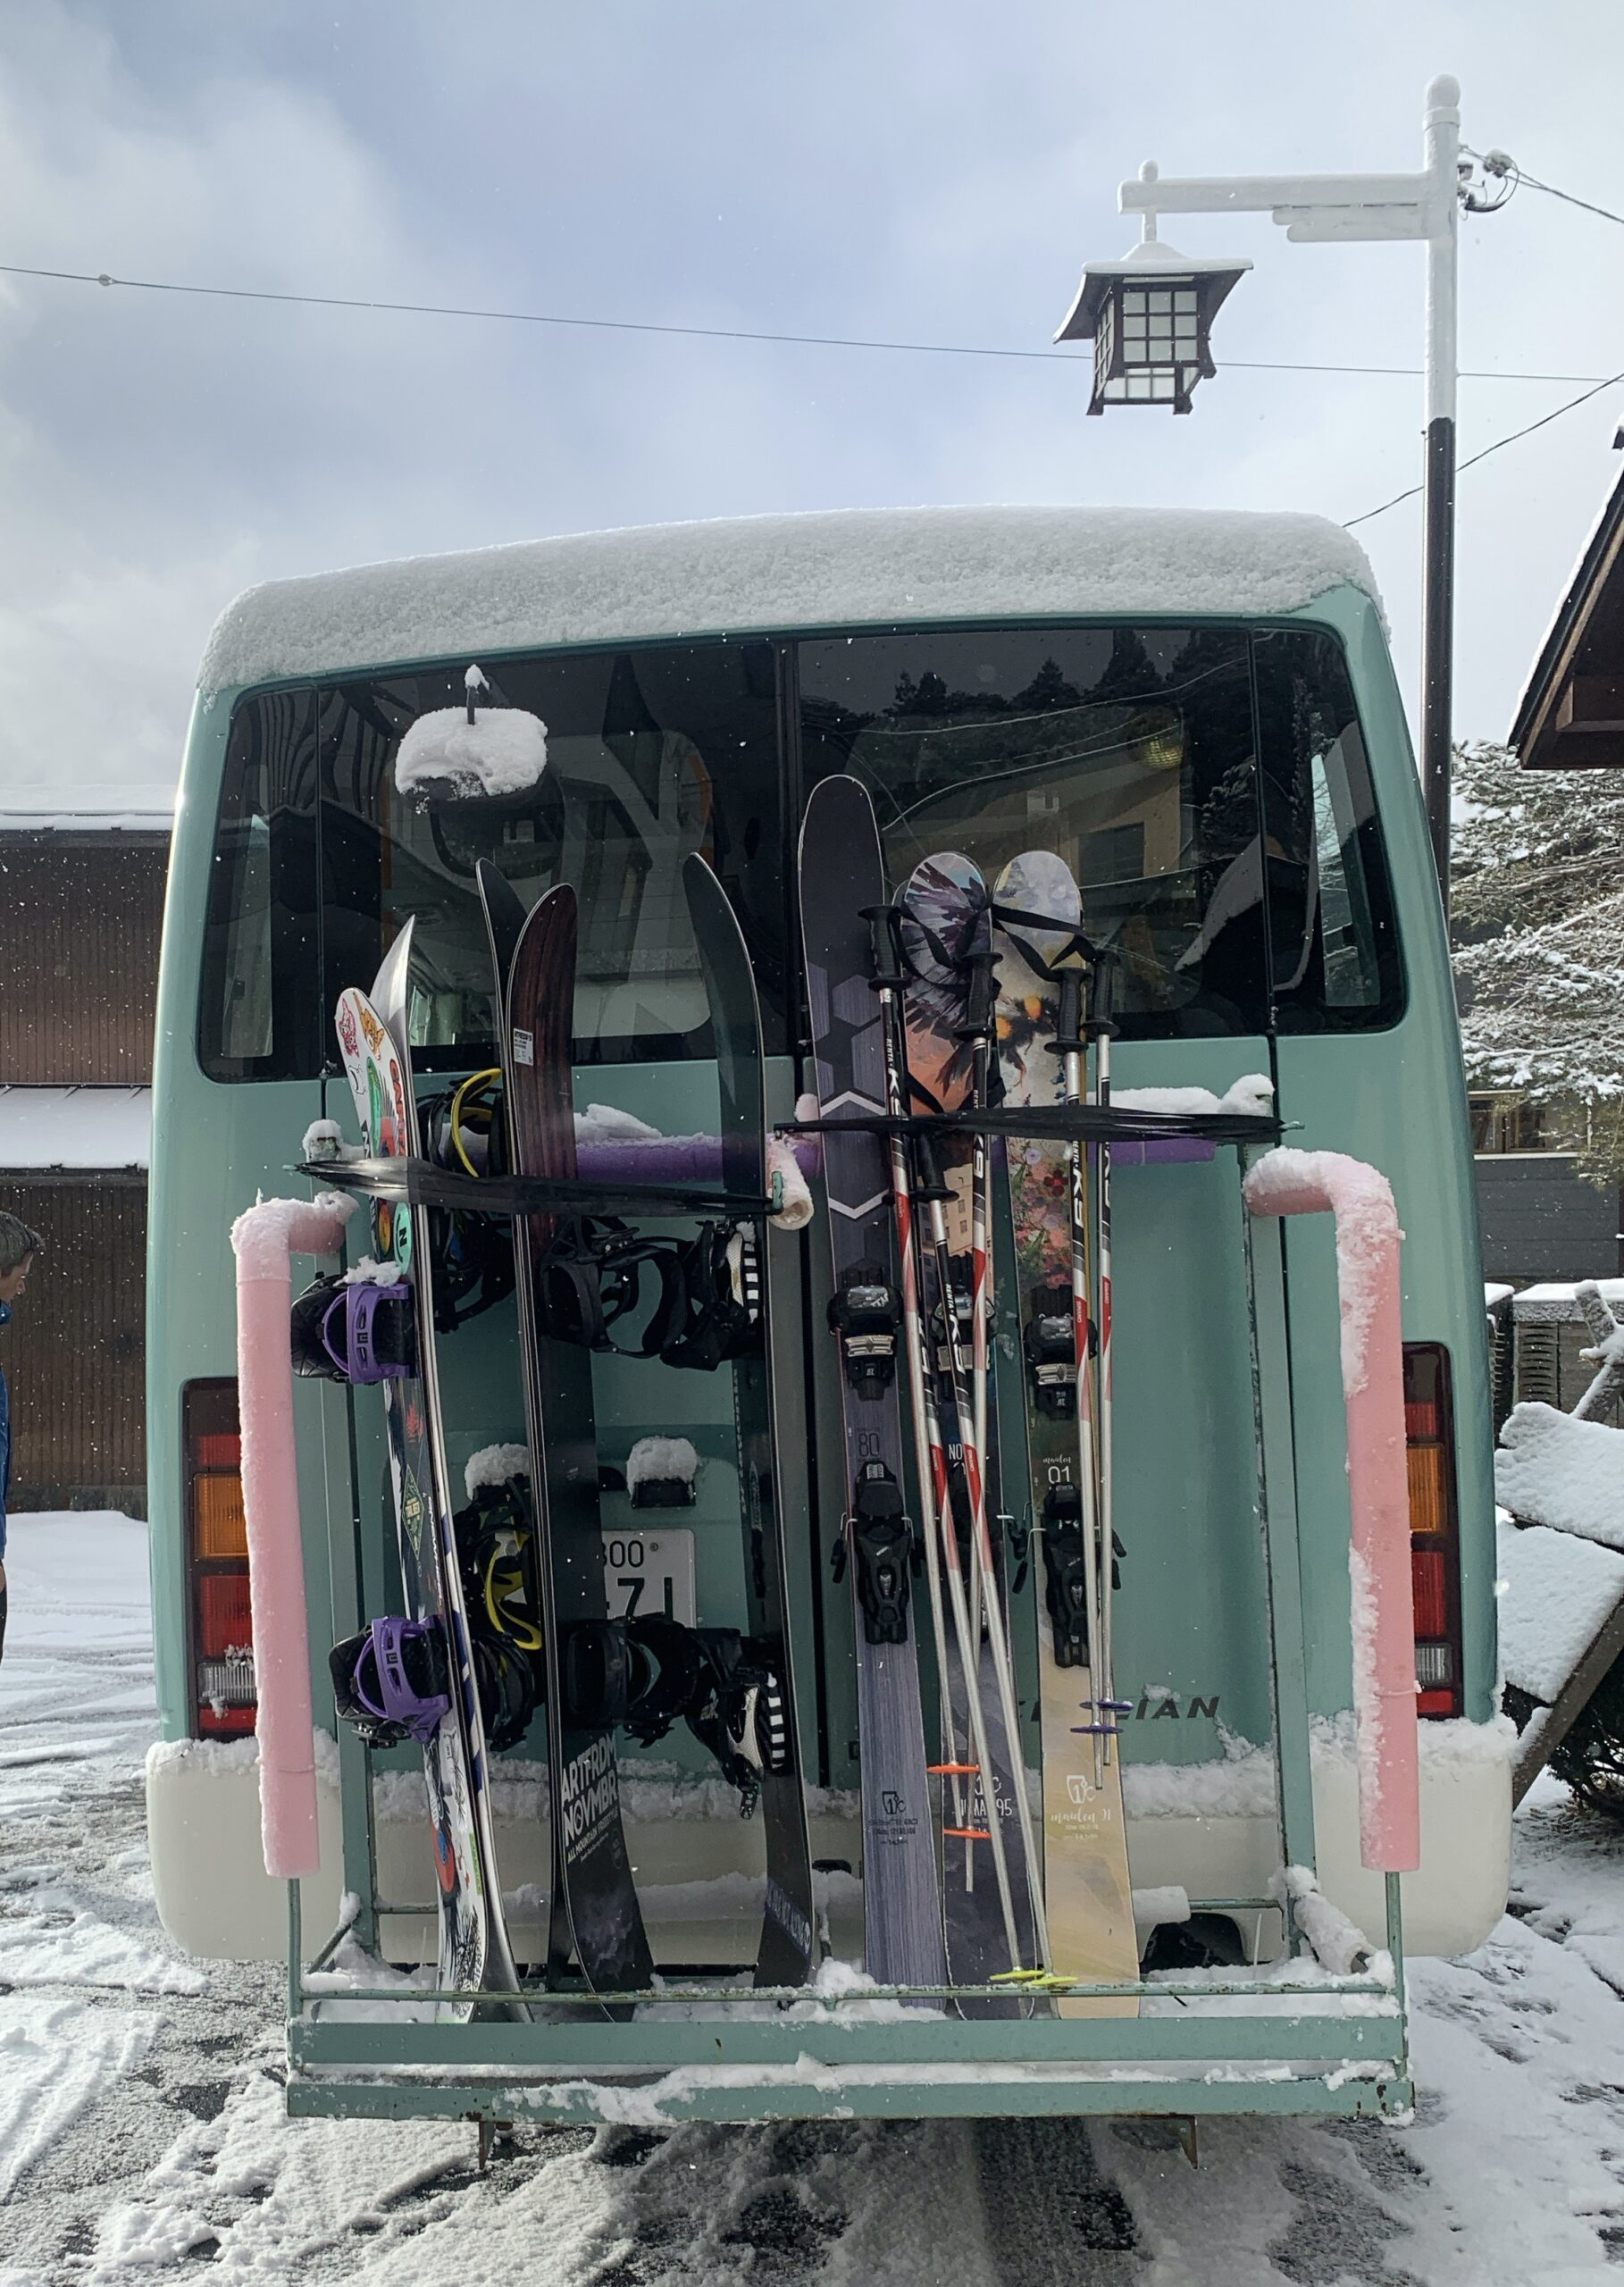 Skis and Snowboards on a bus